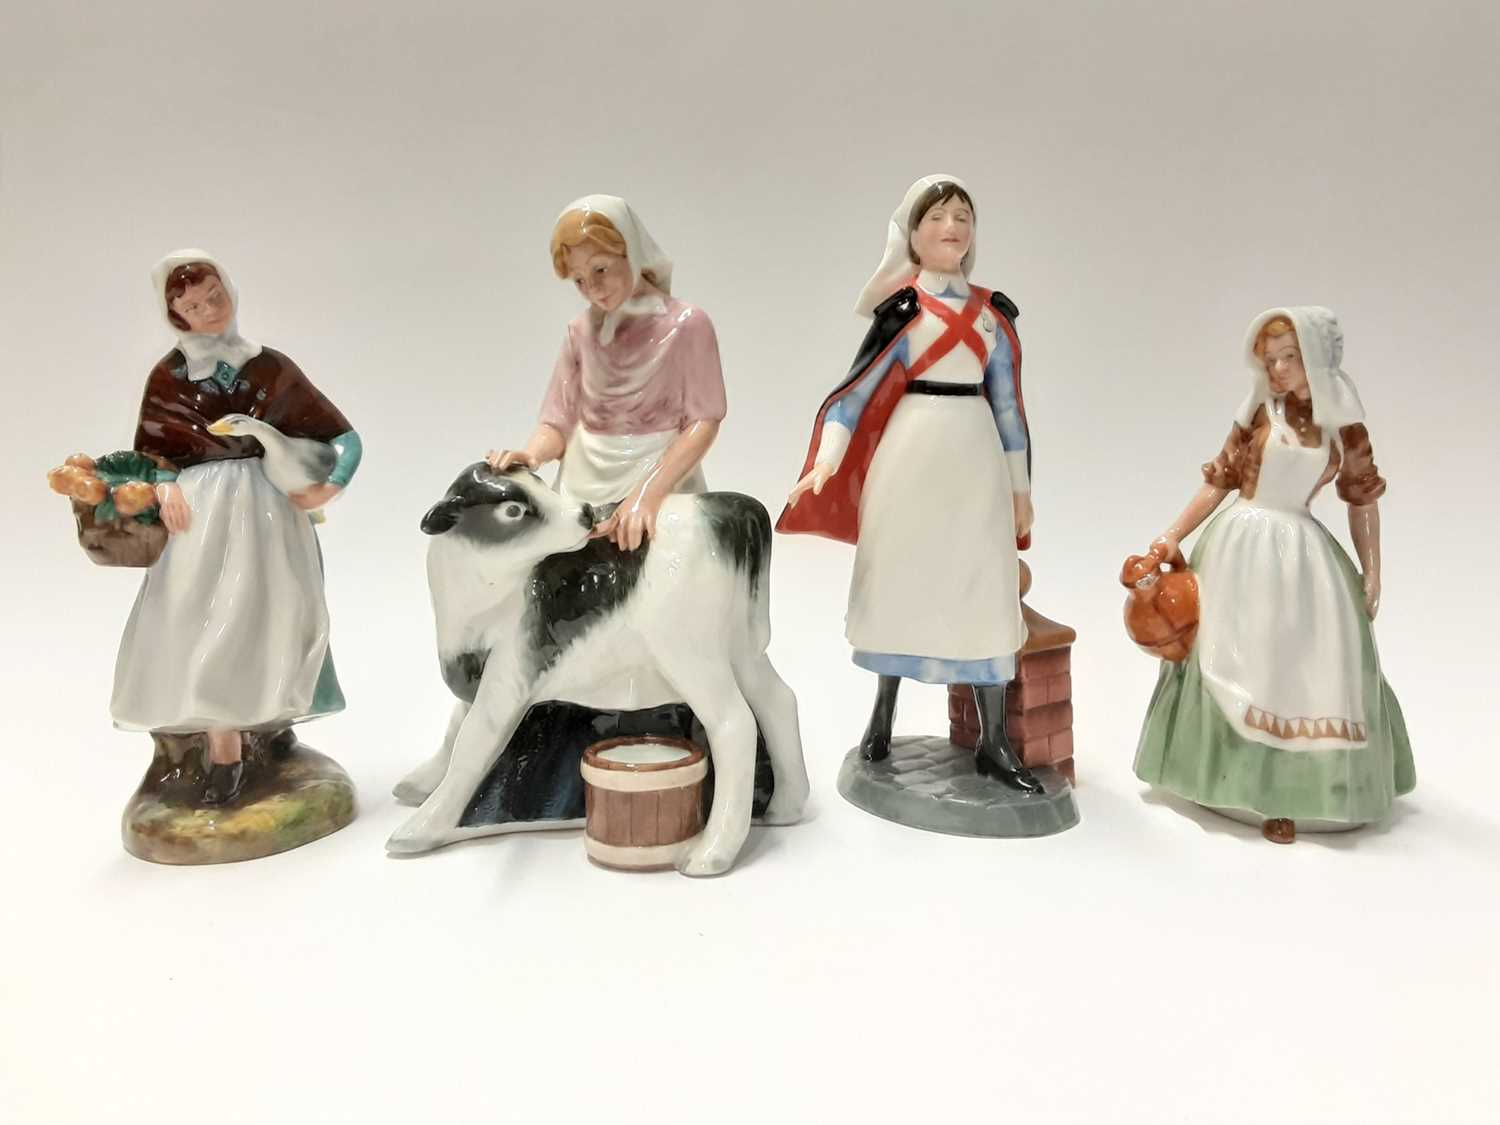 Lot 72 - Four Royal Doulton figures - Country Maid HN3163, Nurse HN4287, The Milkmaid HN2057 and Country Lass HN1991